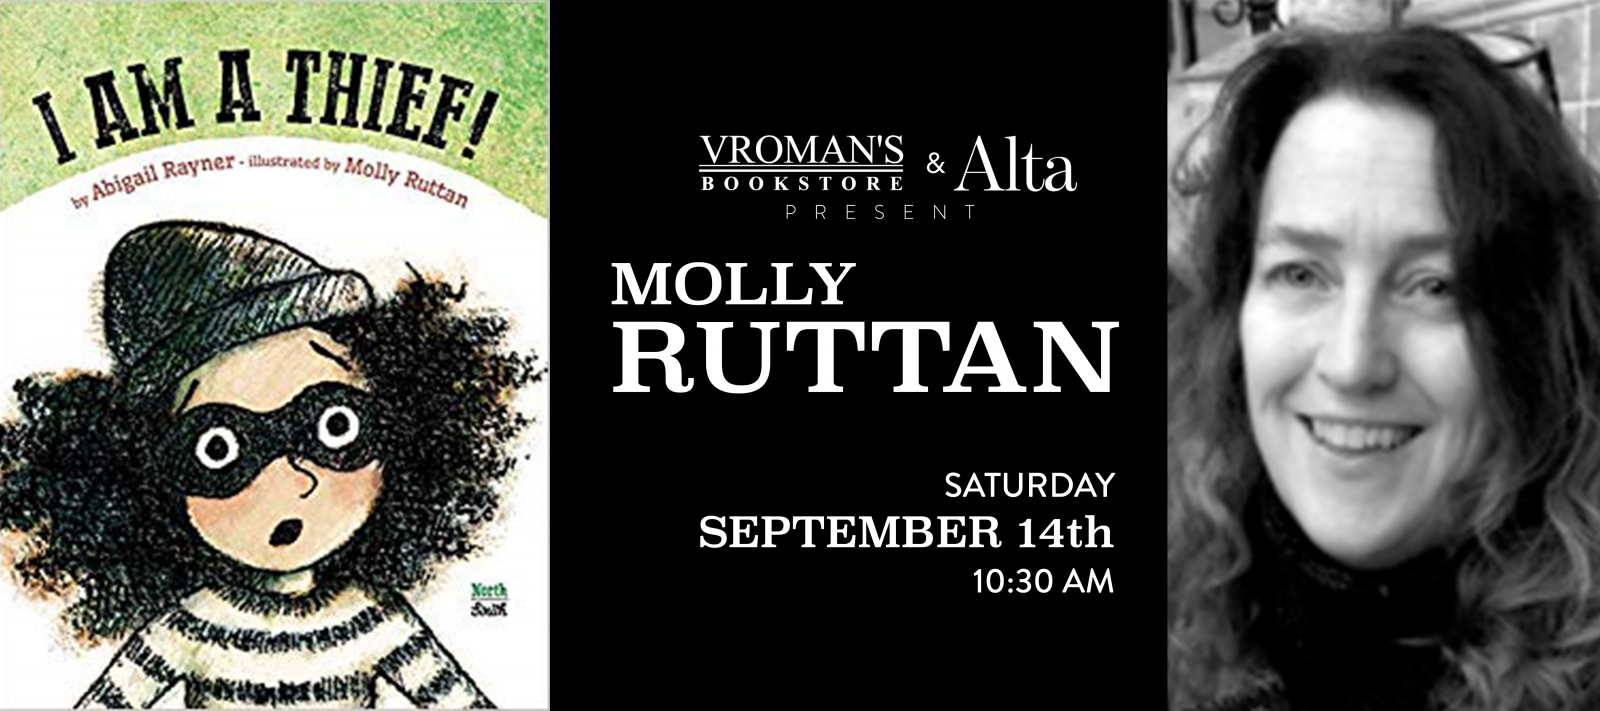 Molly Ruttan book signing Saturday September 14th at 10:30am